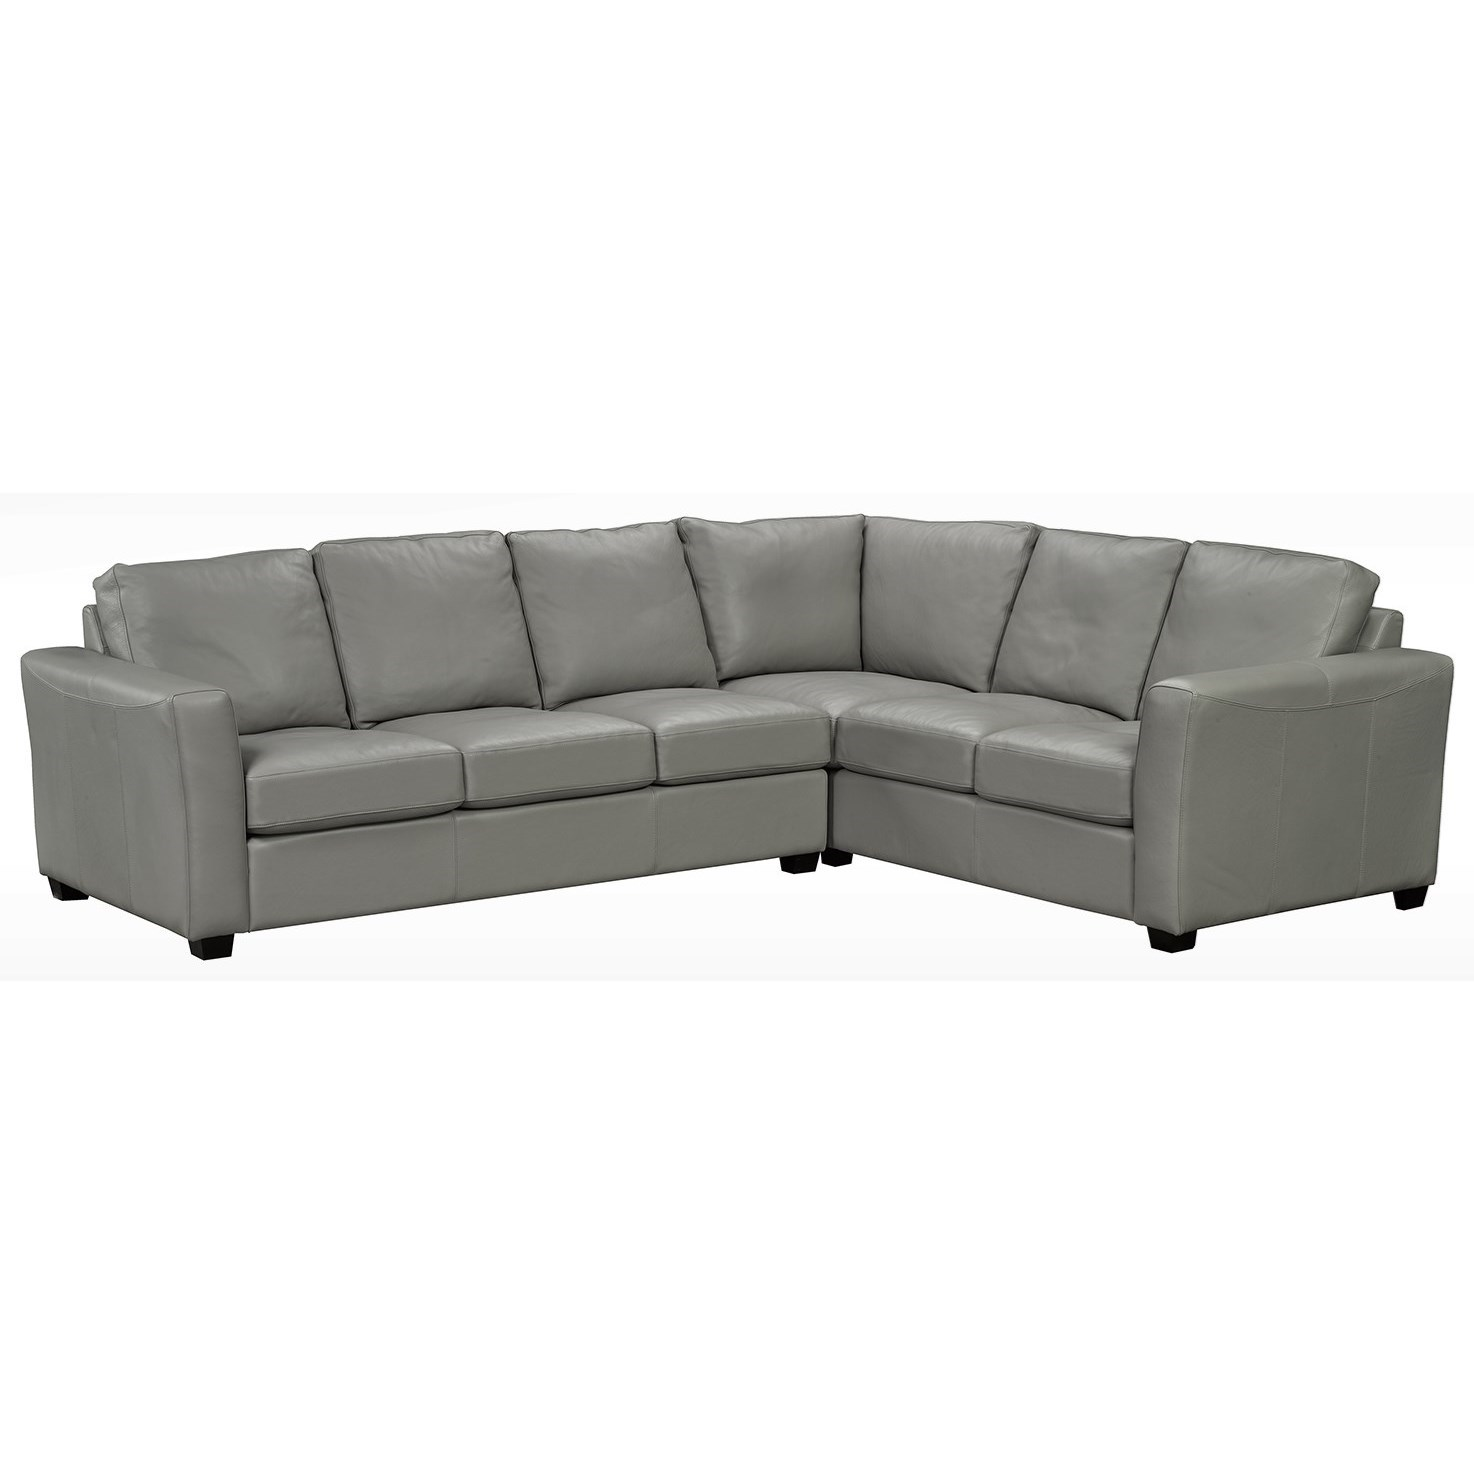 Cassidy 5 Seat Sectional by Brentwood Classics at Stoney Creek Furniture